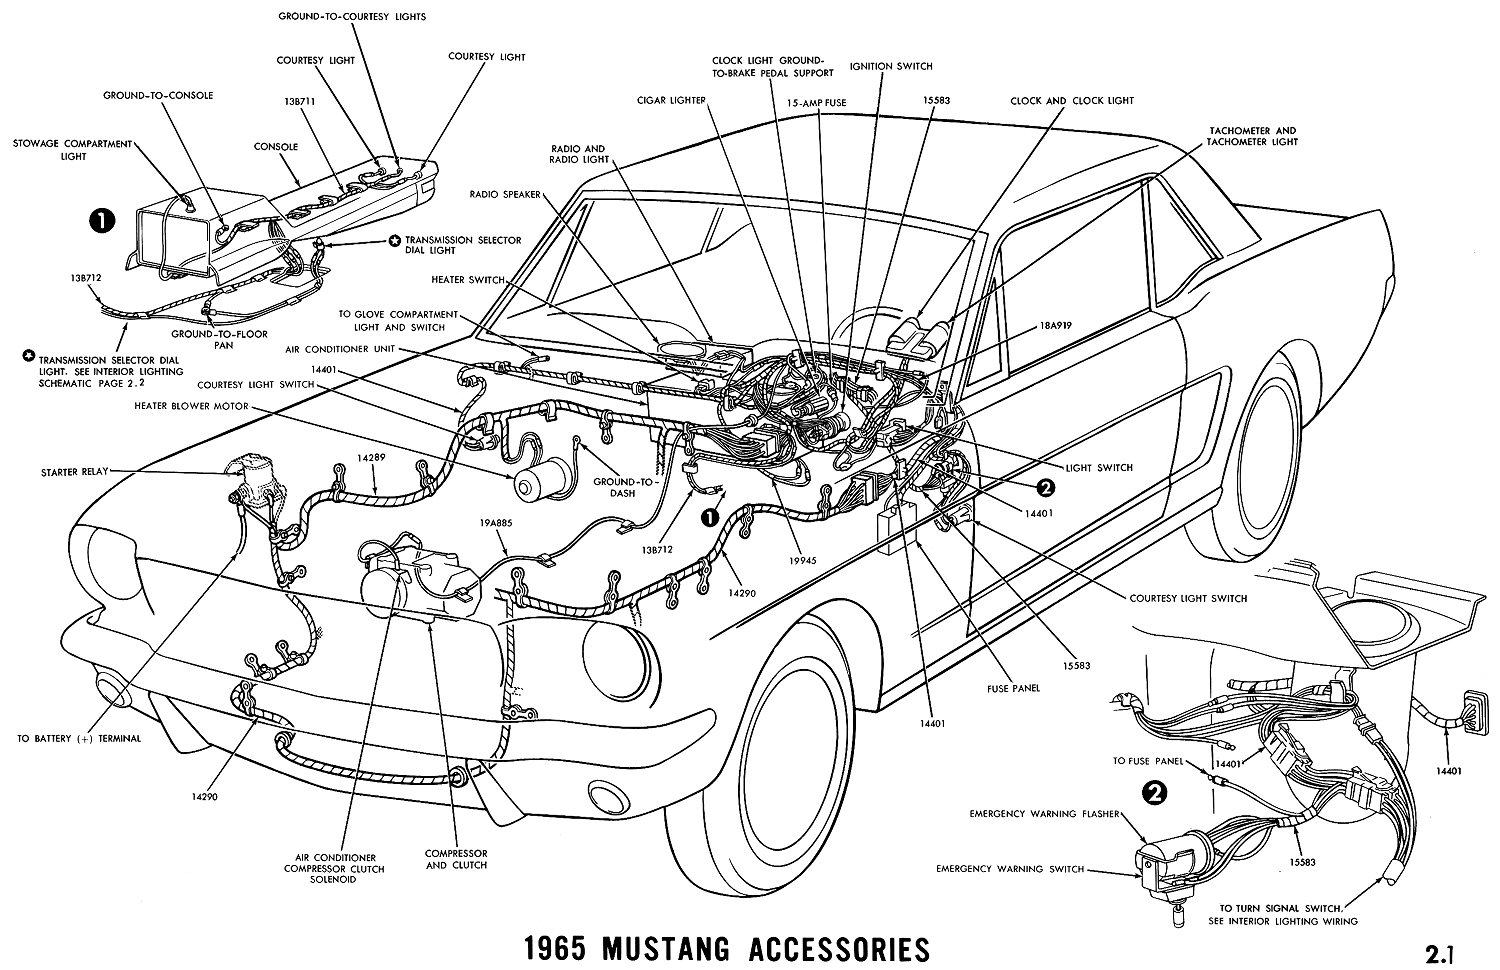 1965 mustang wiring diagrams average joe restoration rh averagejoerestoration com 65 mustang wiring diagram rally pac 65 mustang headlight wiring diagram